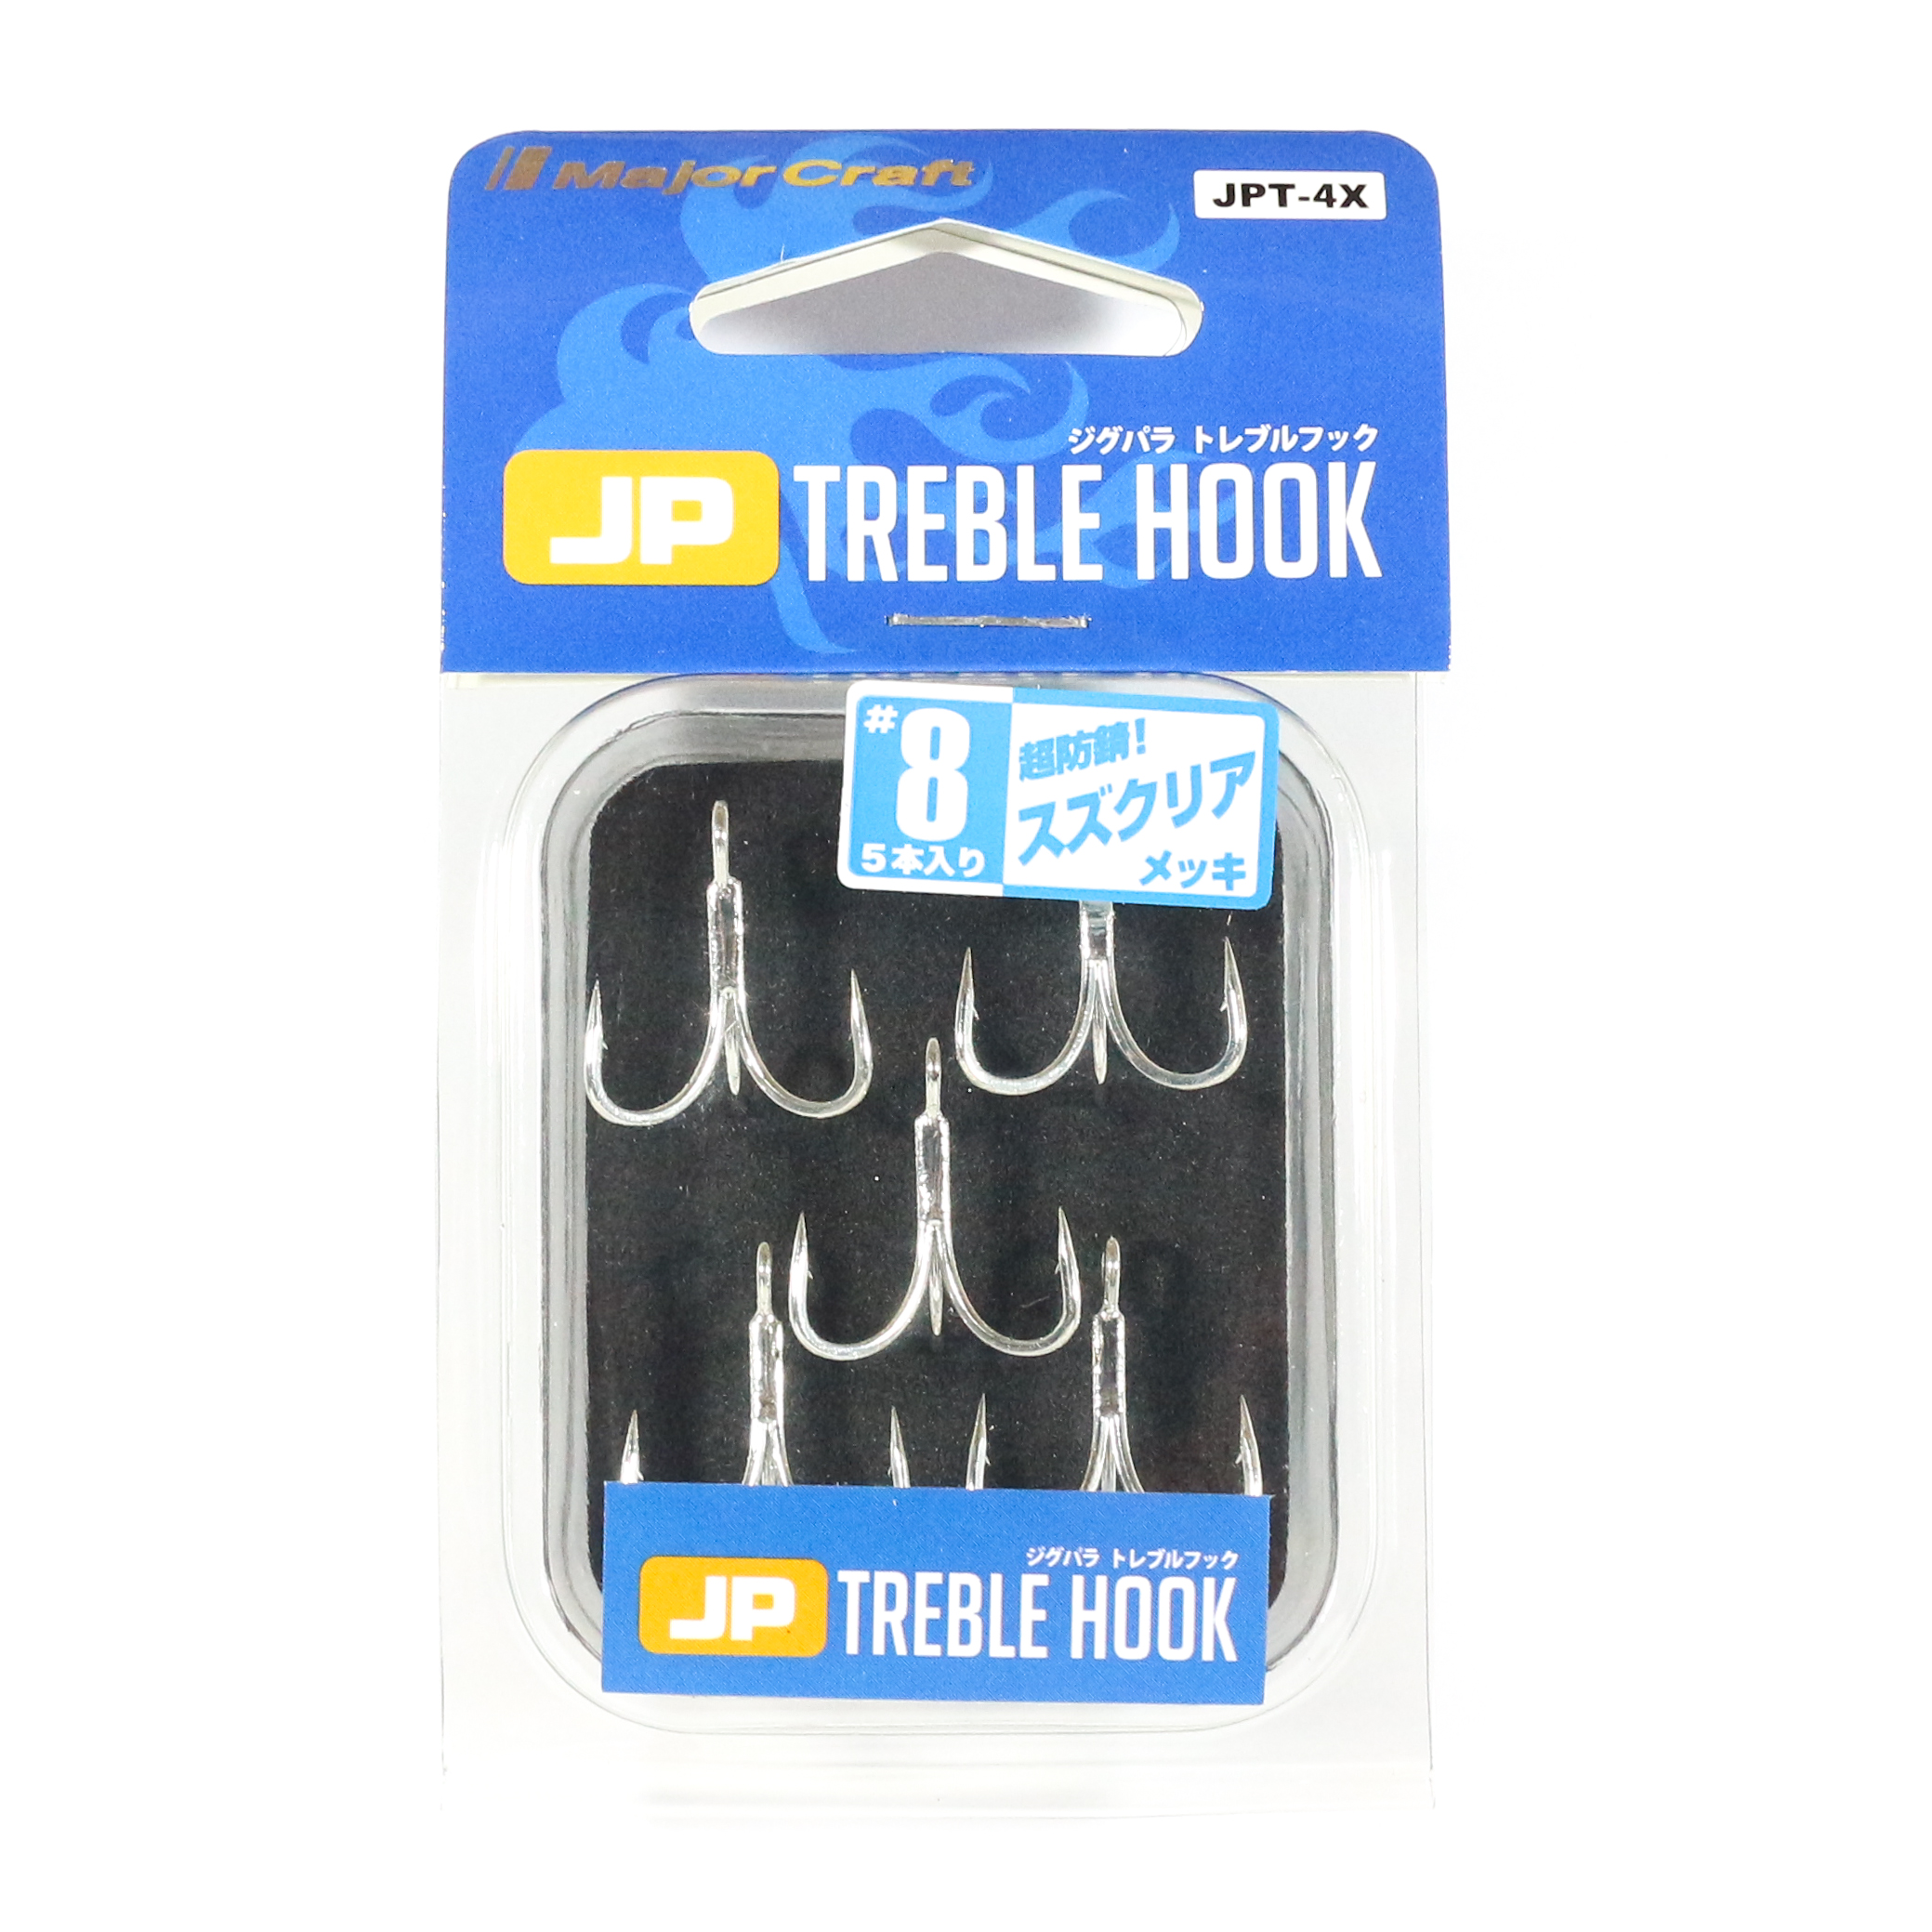 Major Craft Treble Hooks JPT-4X Silver Size 8 5 piece per pack (3025)